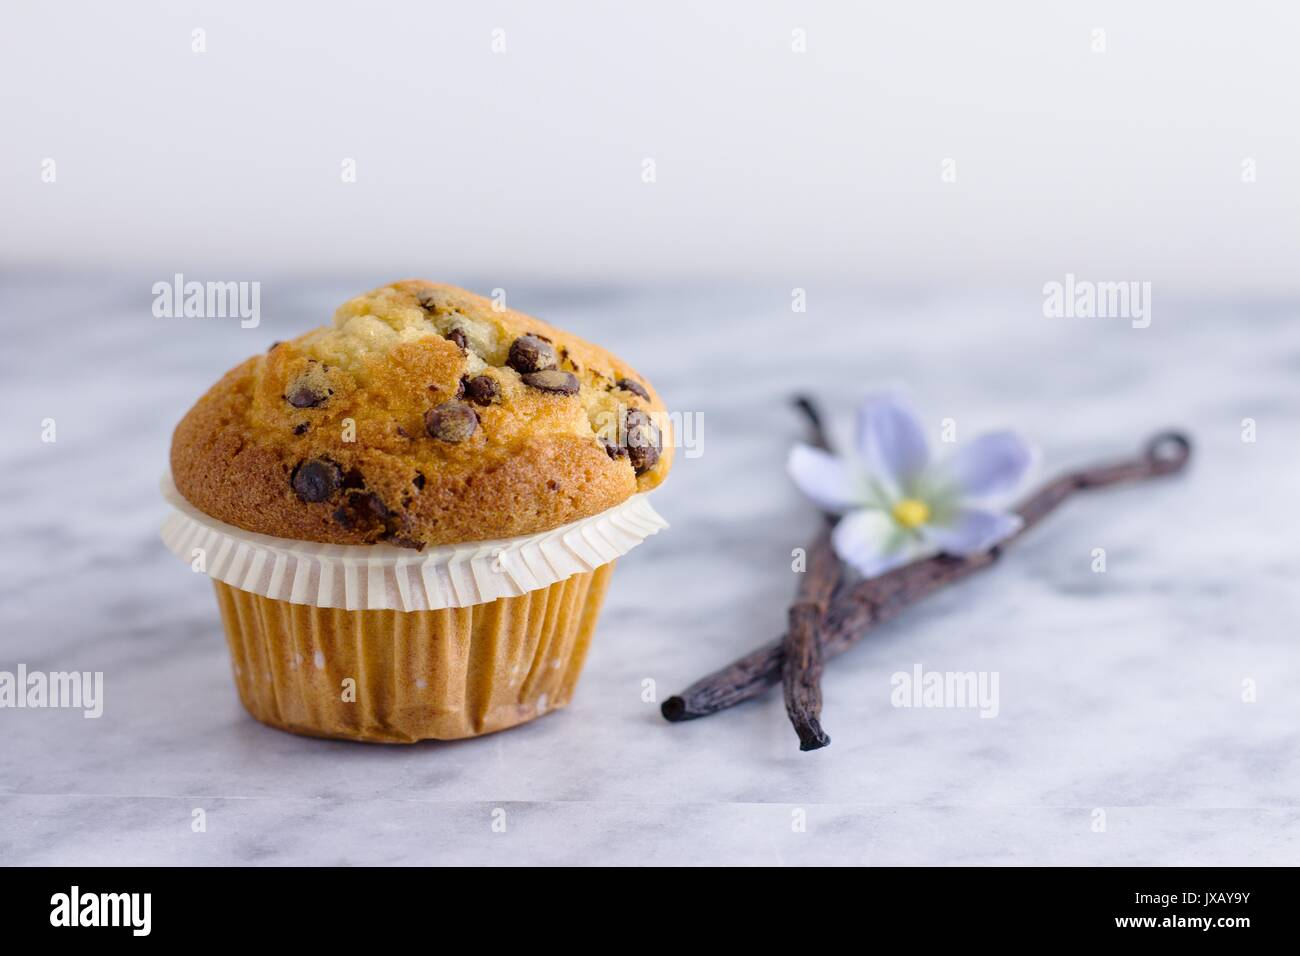 Beautiful vanilla chocolate chip muffin on marble surface with two vanilla pods - Stock Image